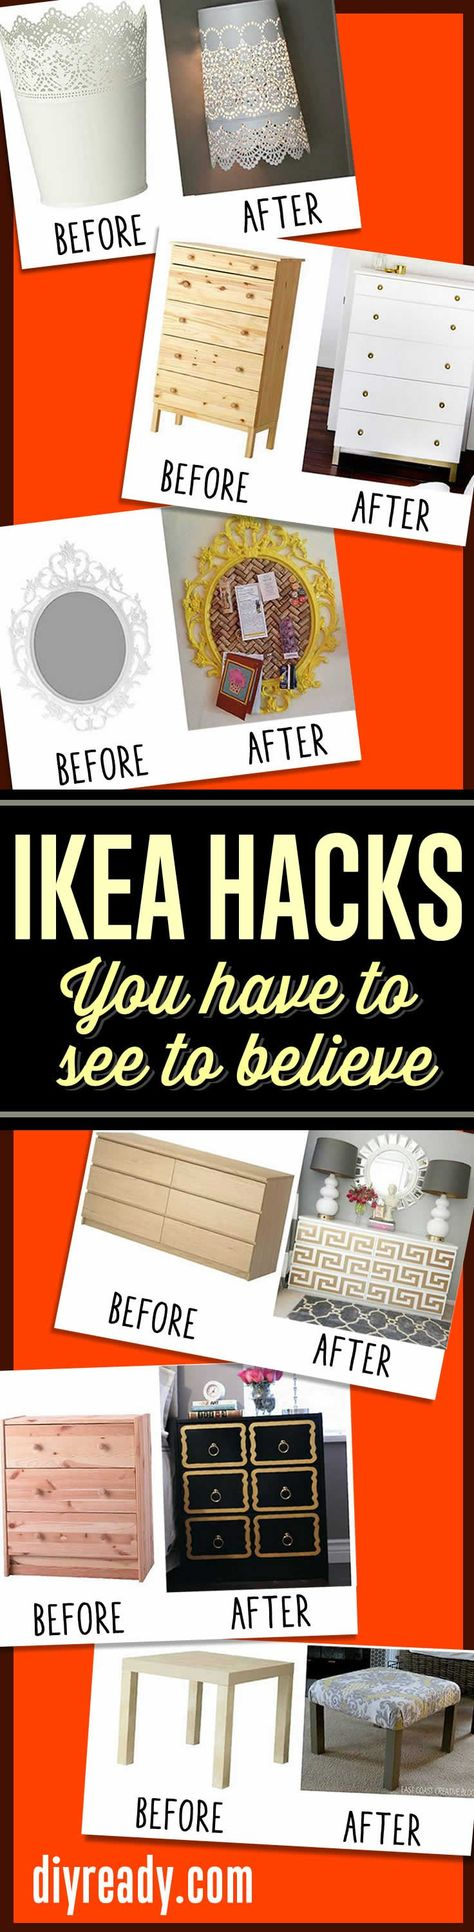 IKEA hack ideas - IKEA DIY furniture hacks and furniture makeovers you have to see to believe! #diy #furniture #diyprojects #ikea http://diyready.com/15-amazing-ikea-hacks/